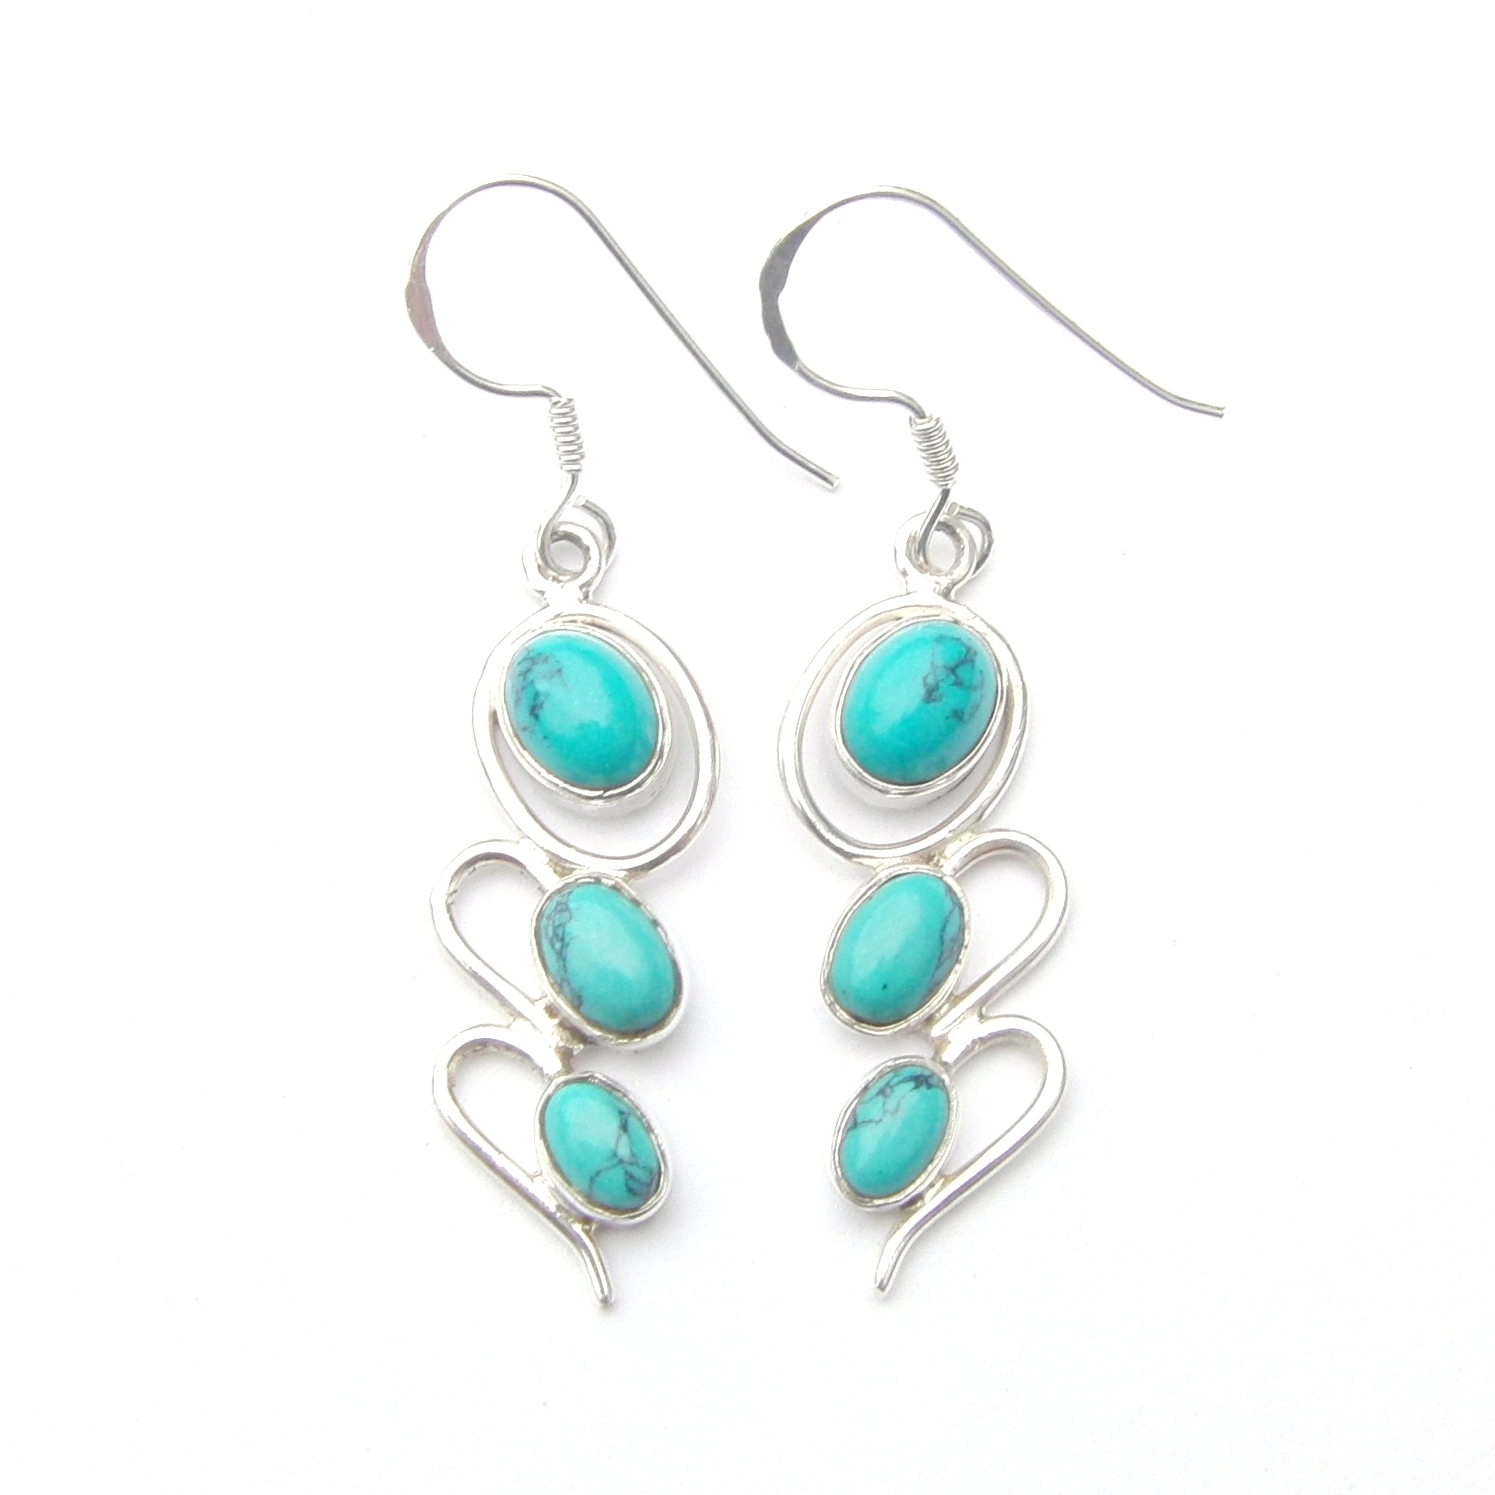 Turquoise 3 Cab Earrings.